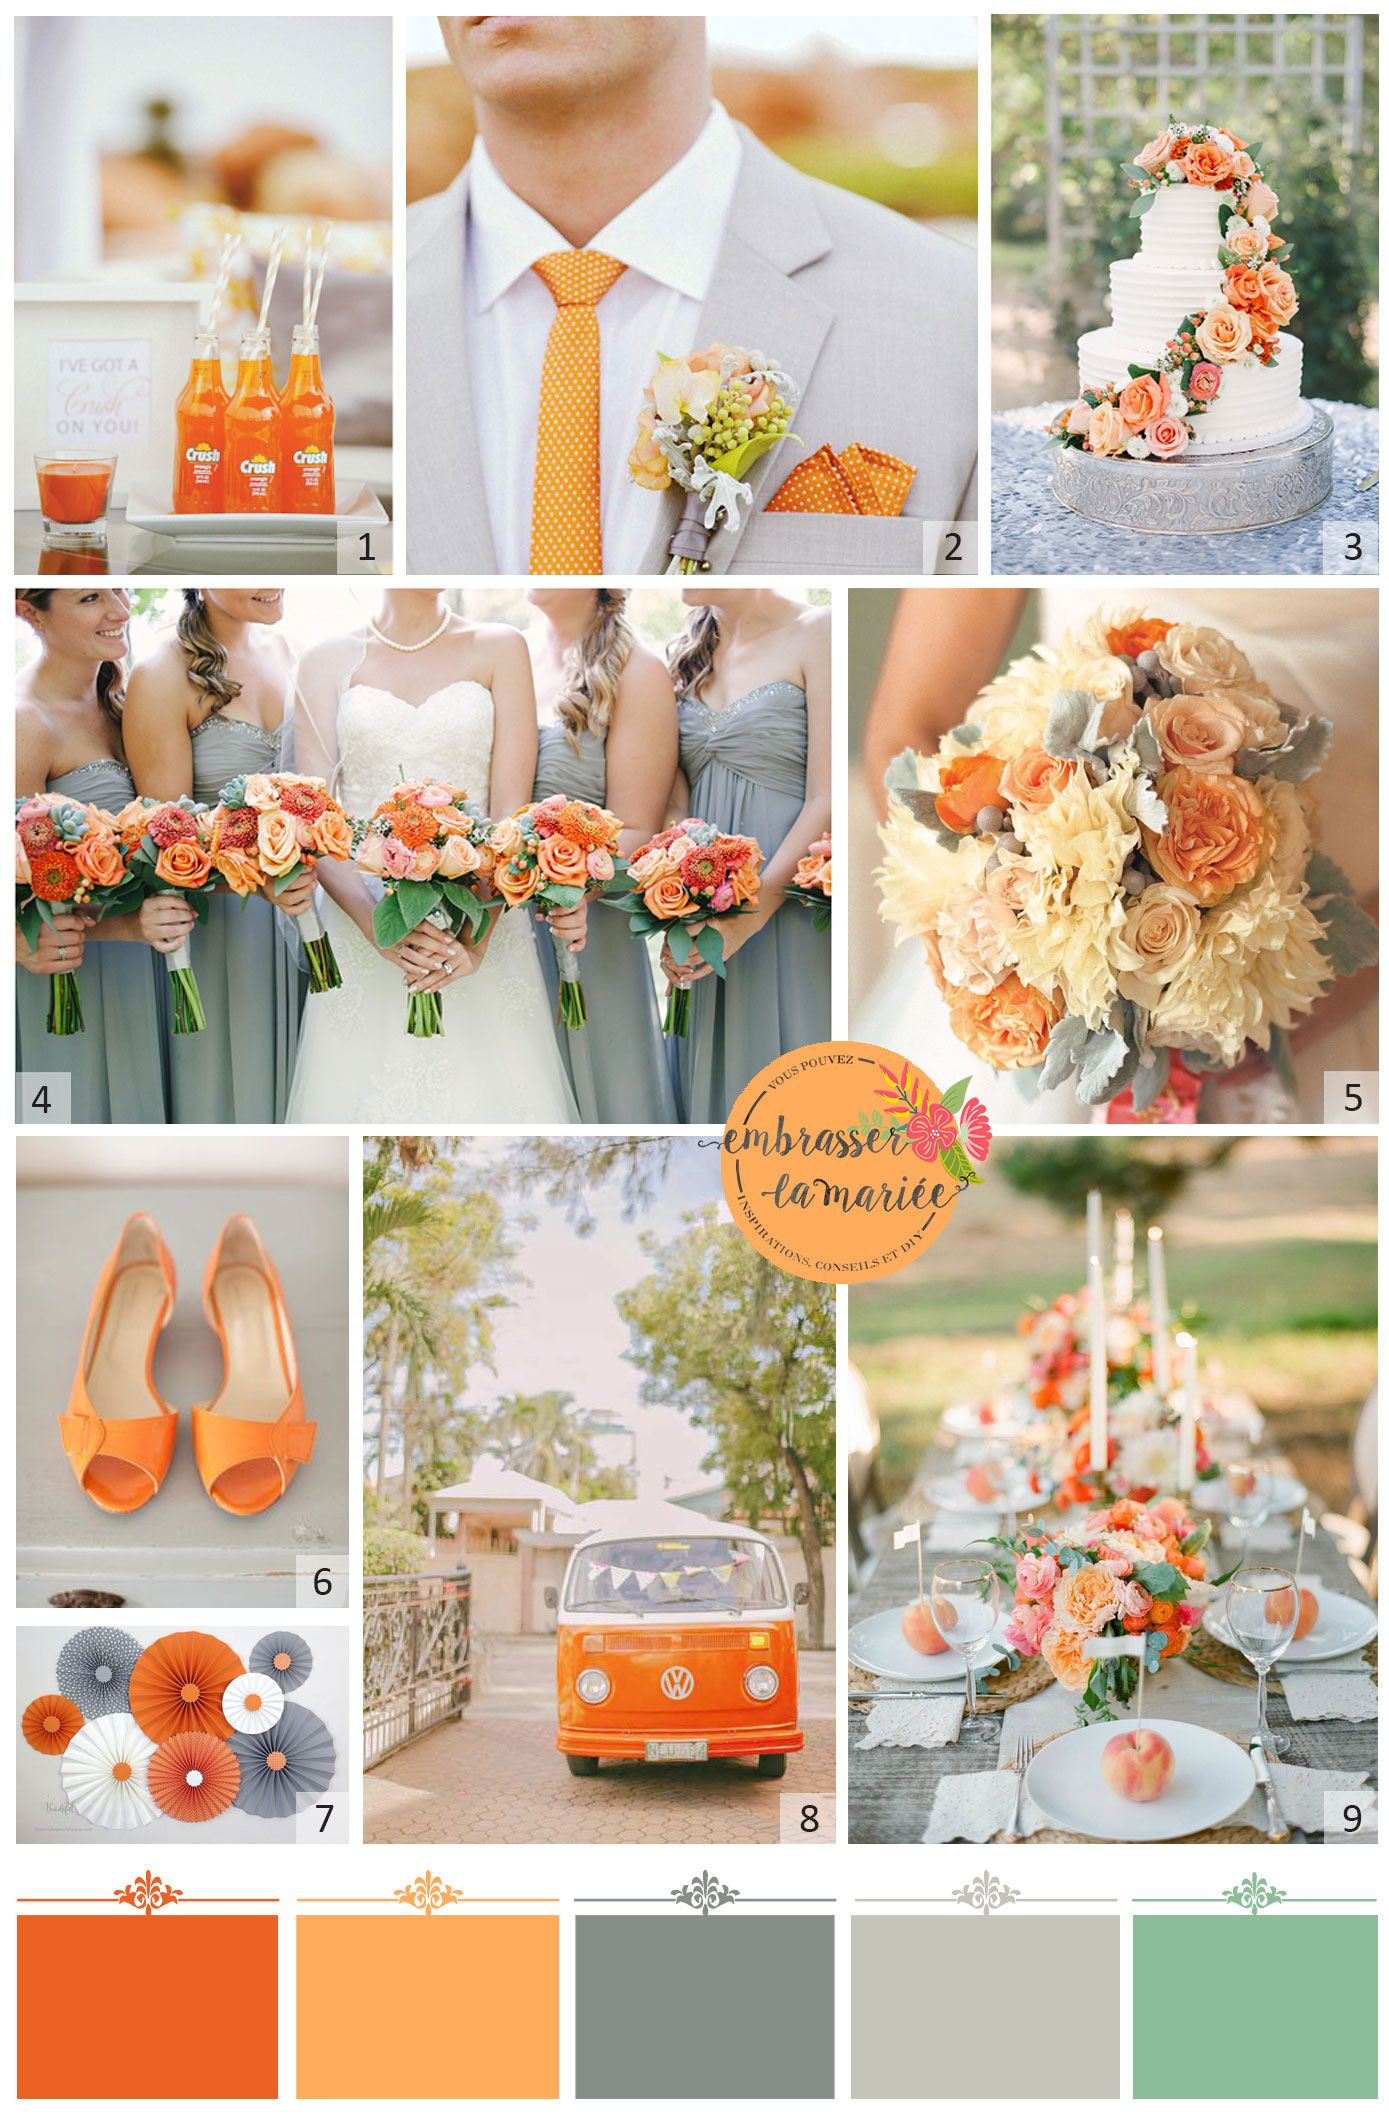 a tangerine and grey wedding? yes please! orange is a